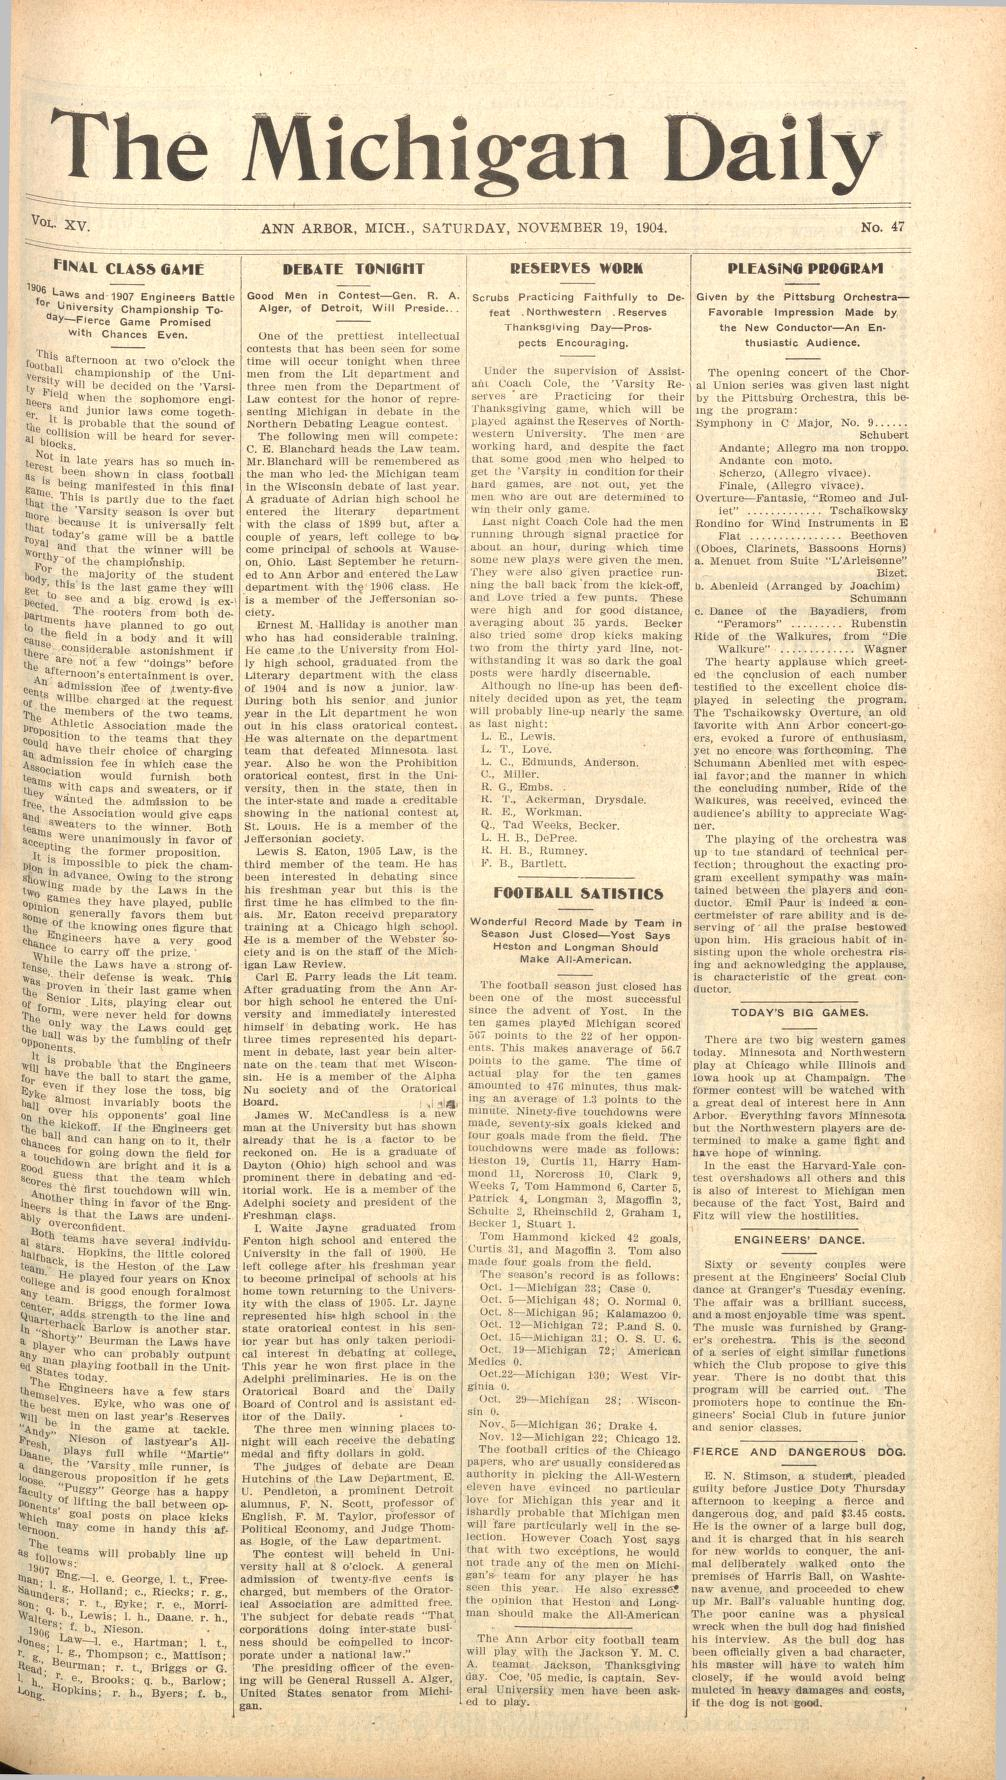 Michigan Daily Digital Archives - November 19, 1904 (vol  14